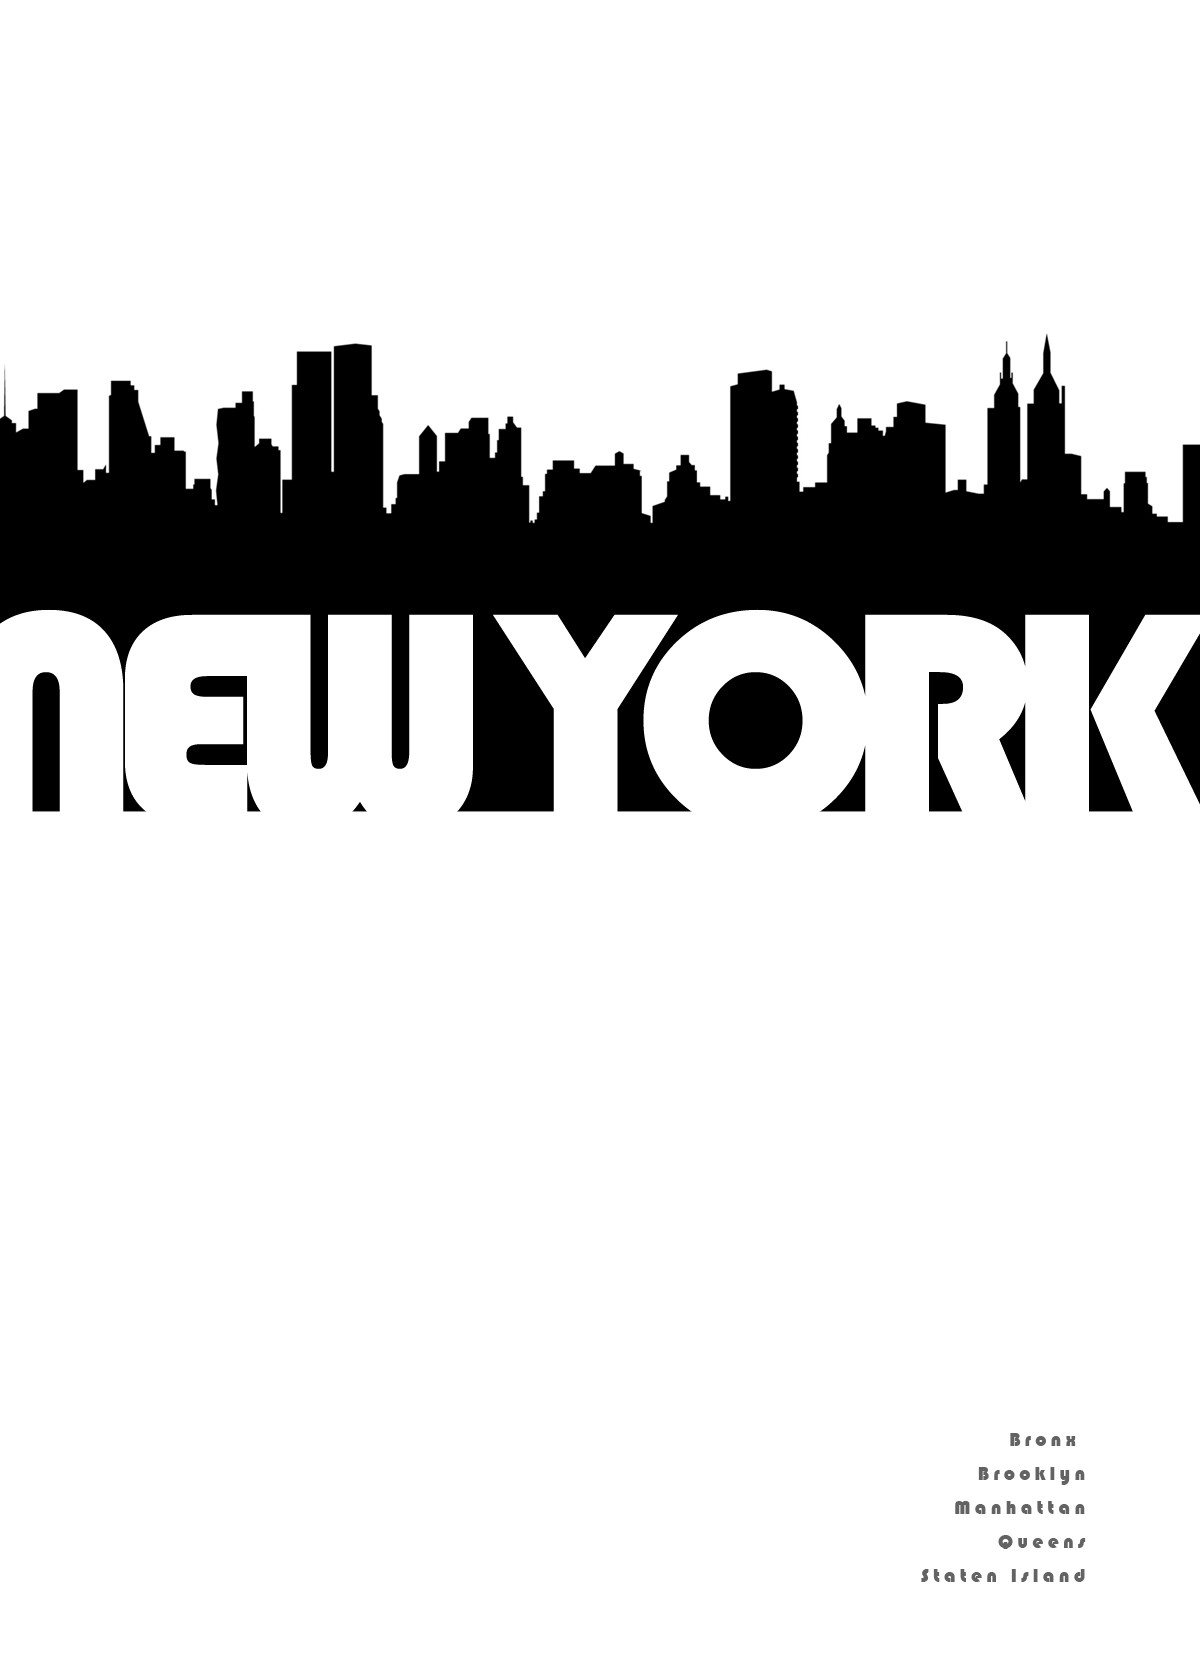 Free New York City Skyline Outline, Download Free Clip Art.